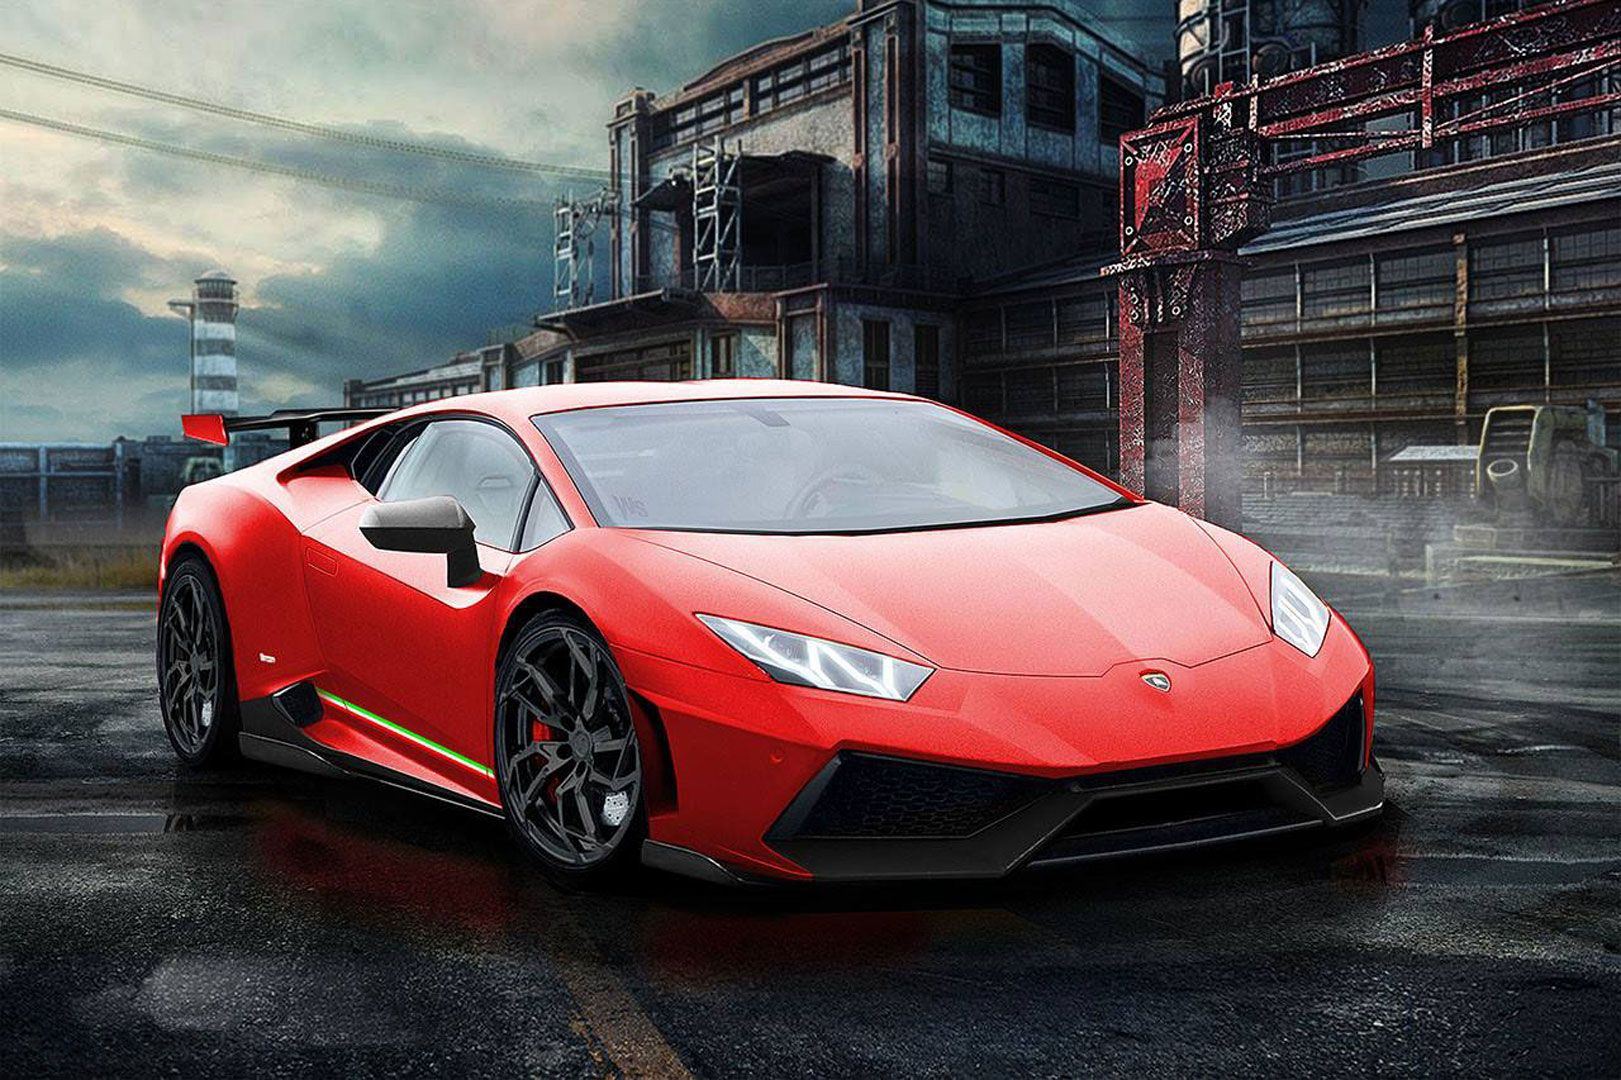 Lamborghini Huracan Wallpapers High Quality Resolution